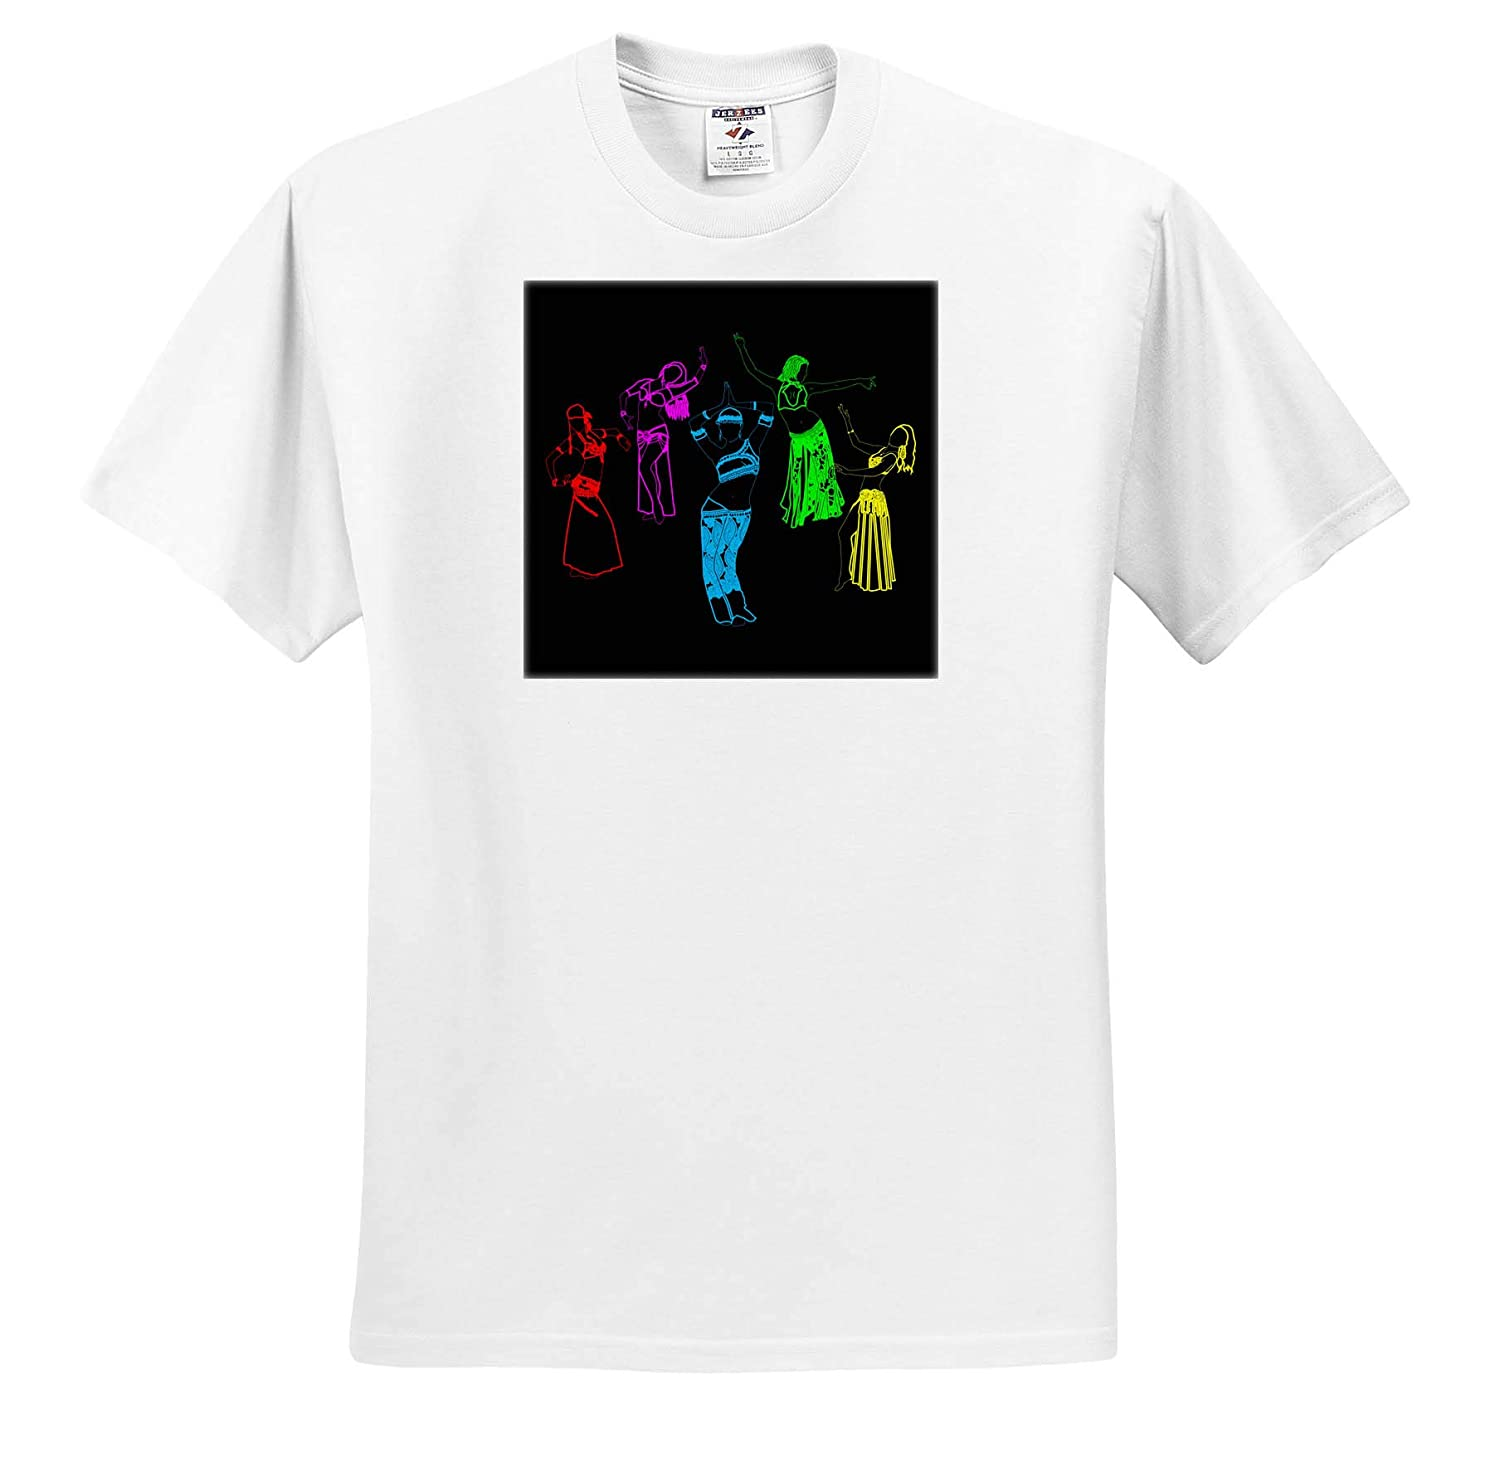 Dance T-Shirts Colorfully Outlined Silhouettes of Oriental Female Dancers on Black 3dRose Alexis Design